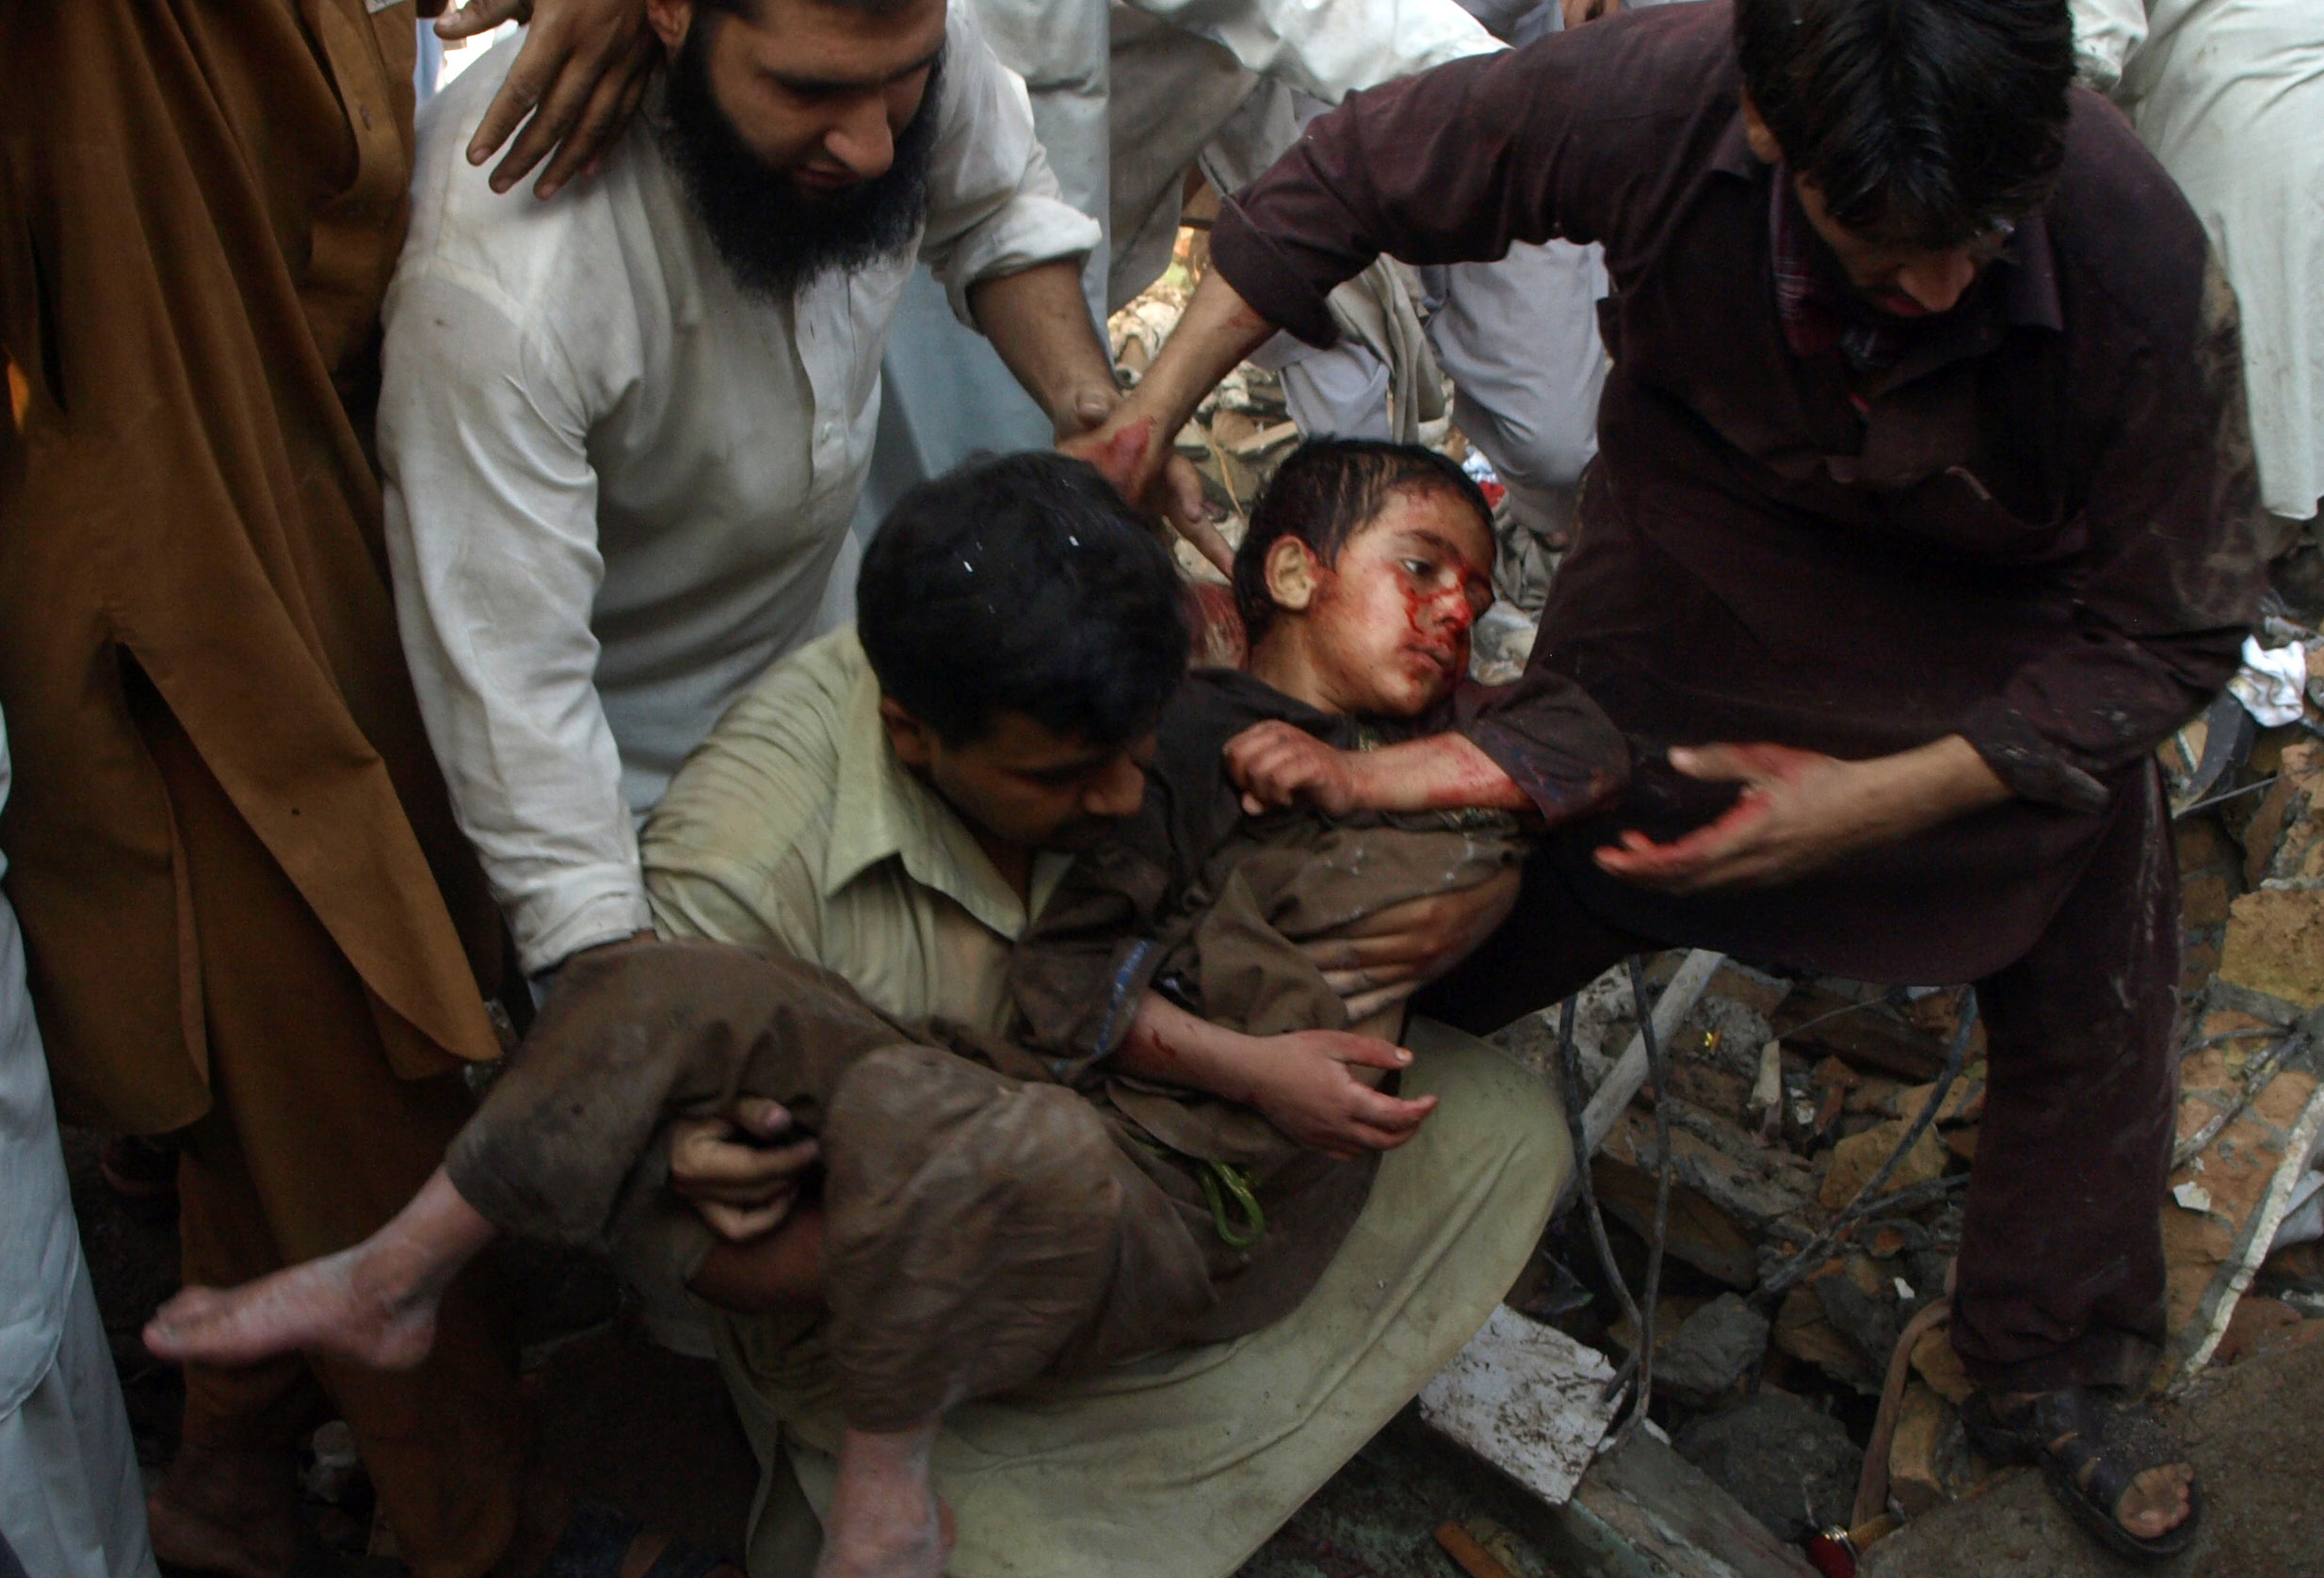 An injured boy is carried out of a busy bazaar in the city of Peshawar after a bombing on October 28th, 2009